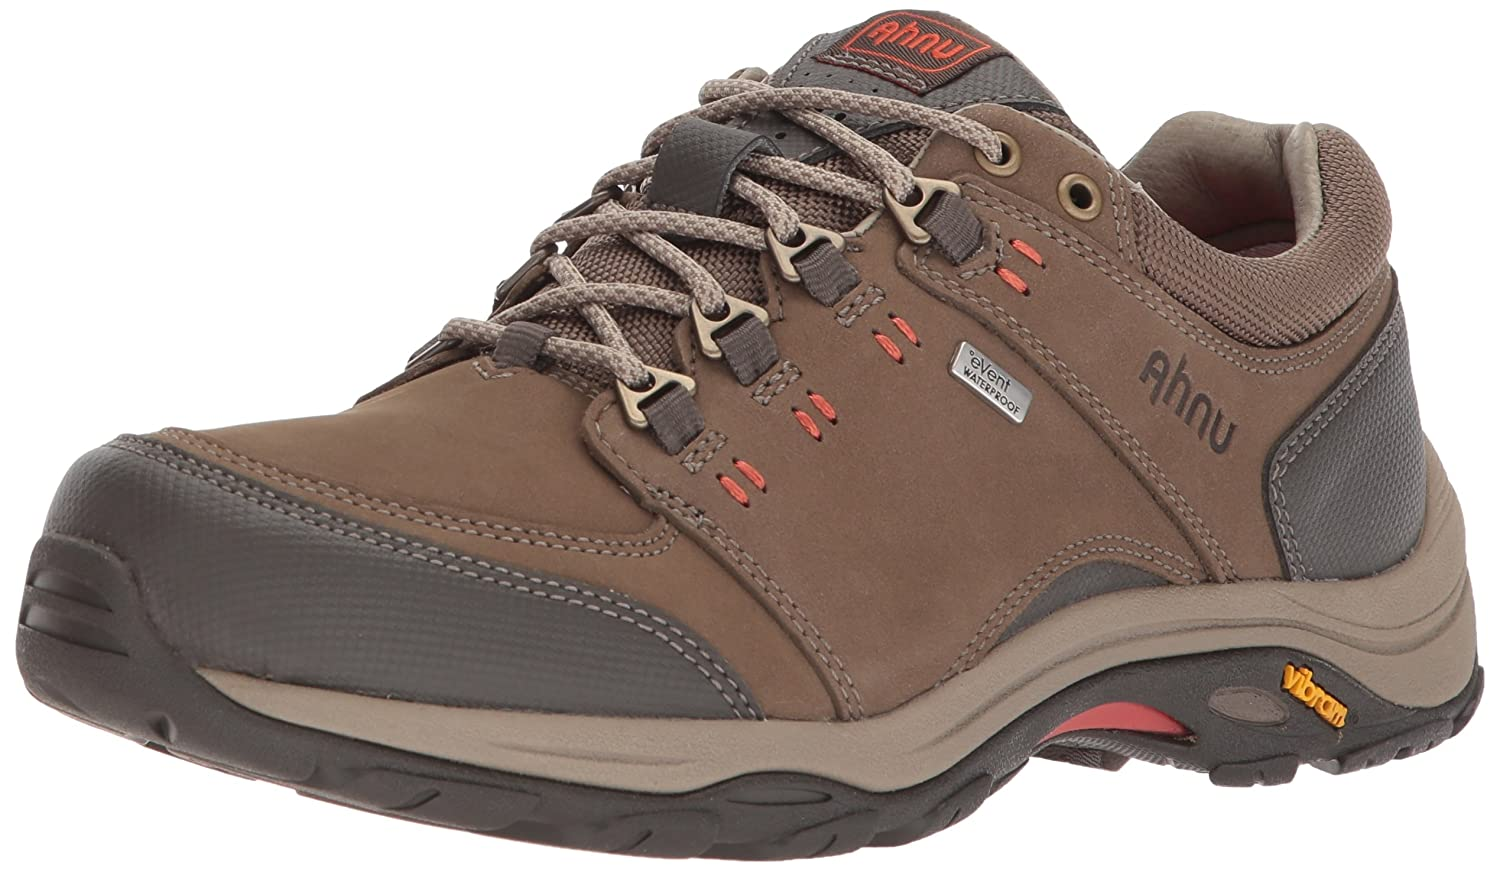 Ahnu Women's W Montara III Event Hiking Boot B072QGNF82 8.5 B(M) US|Chocolate Chip